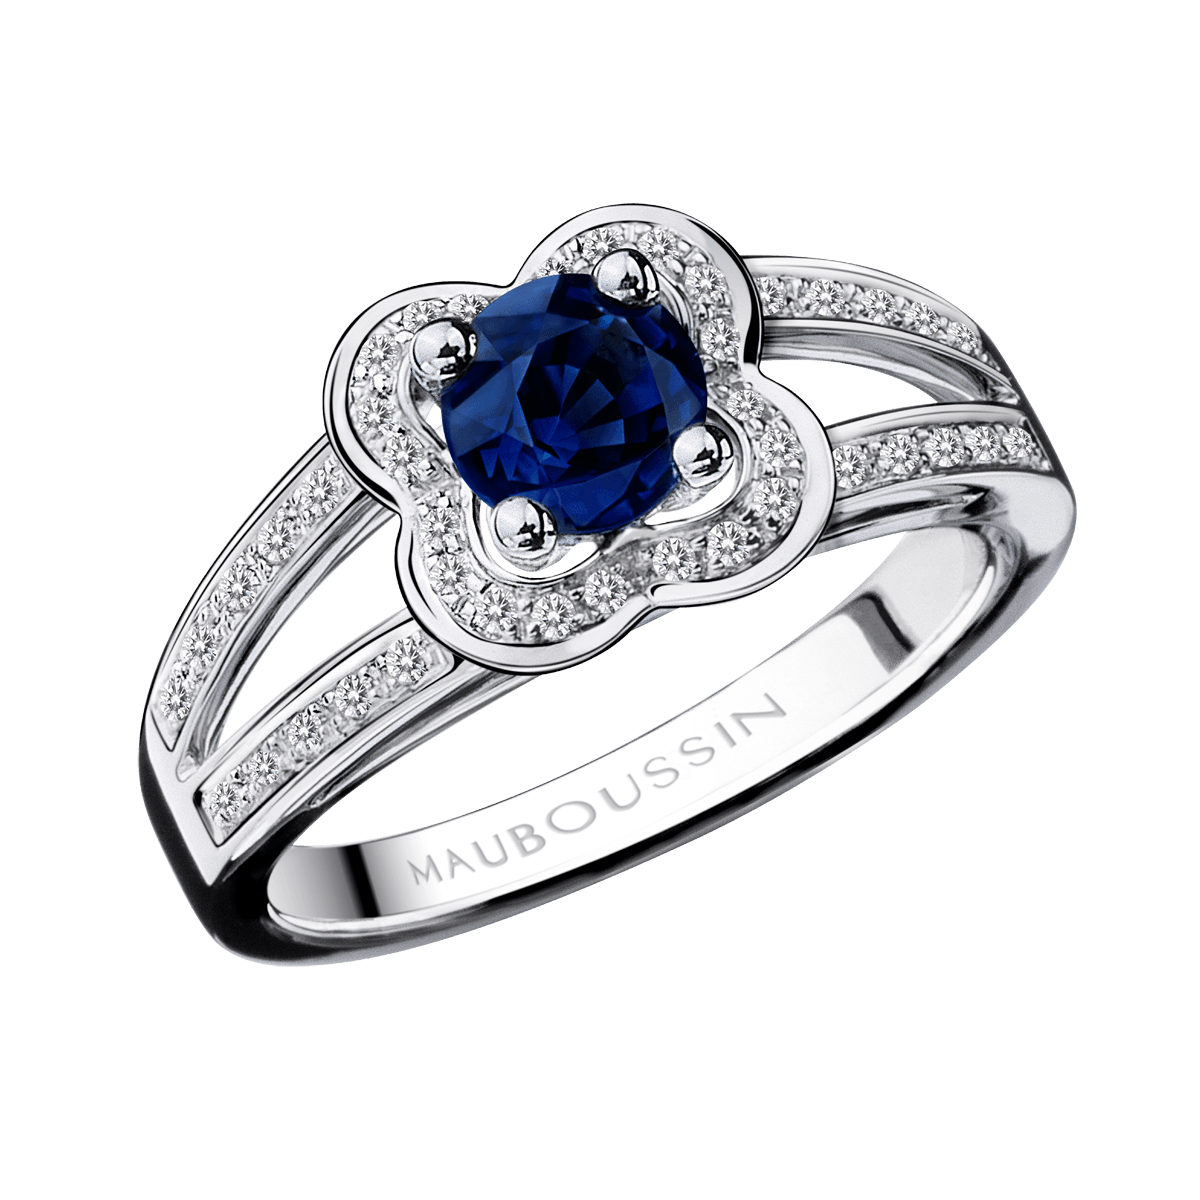 Souvent Sex and Love ring, Sapphires, white gold by Mauboussin Singapore OR06